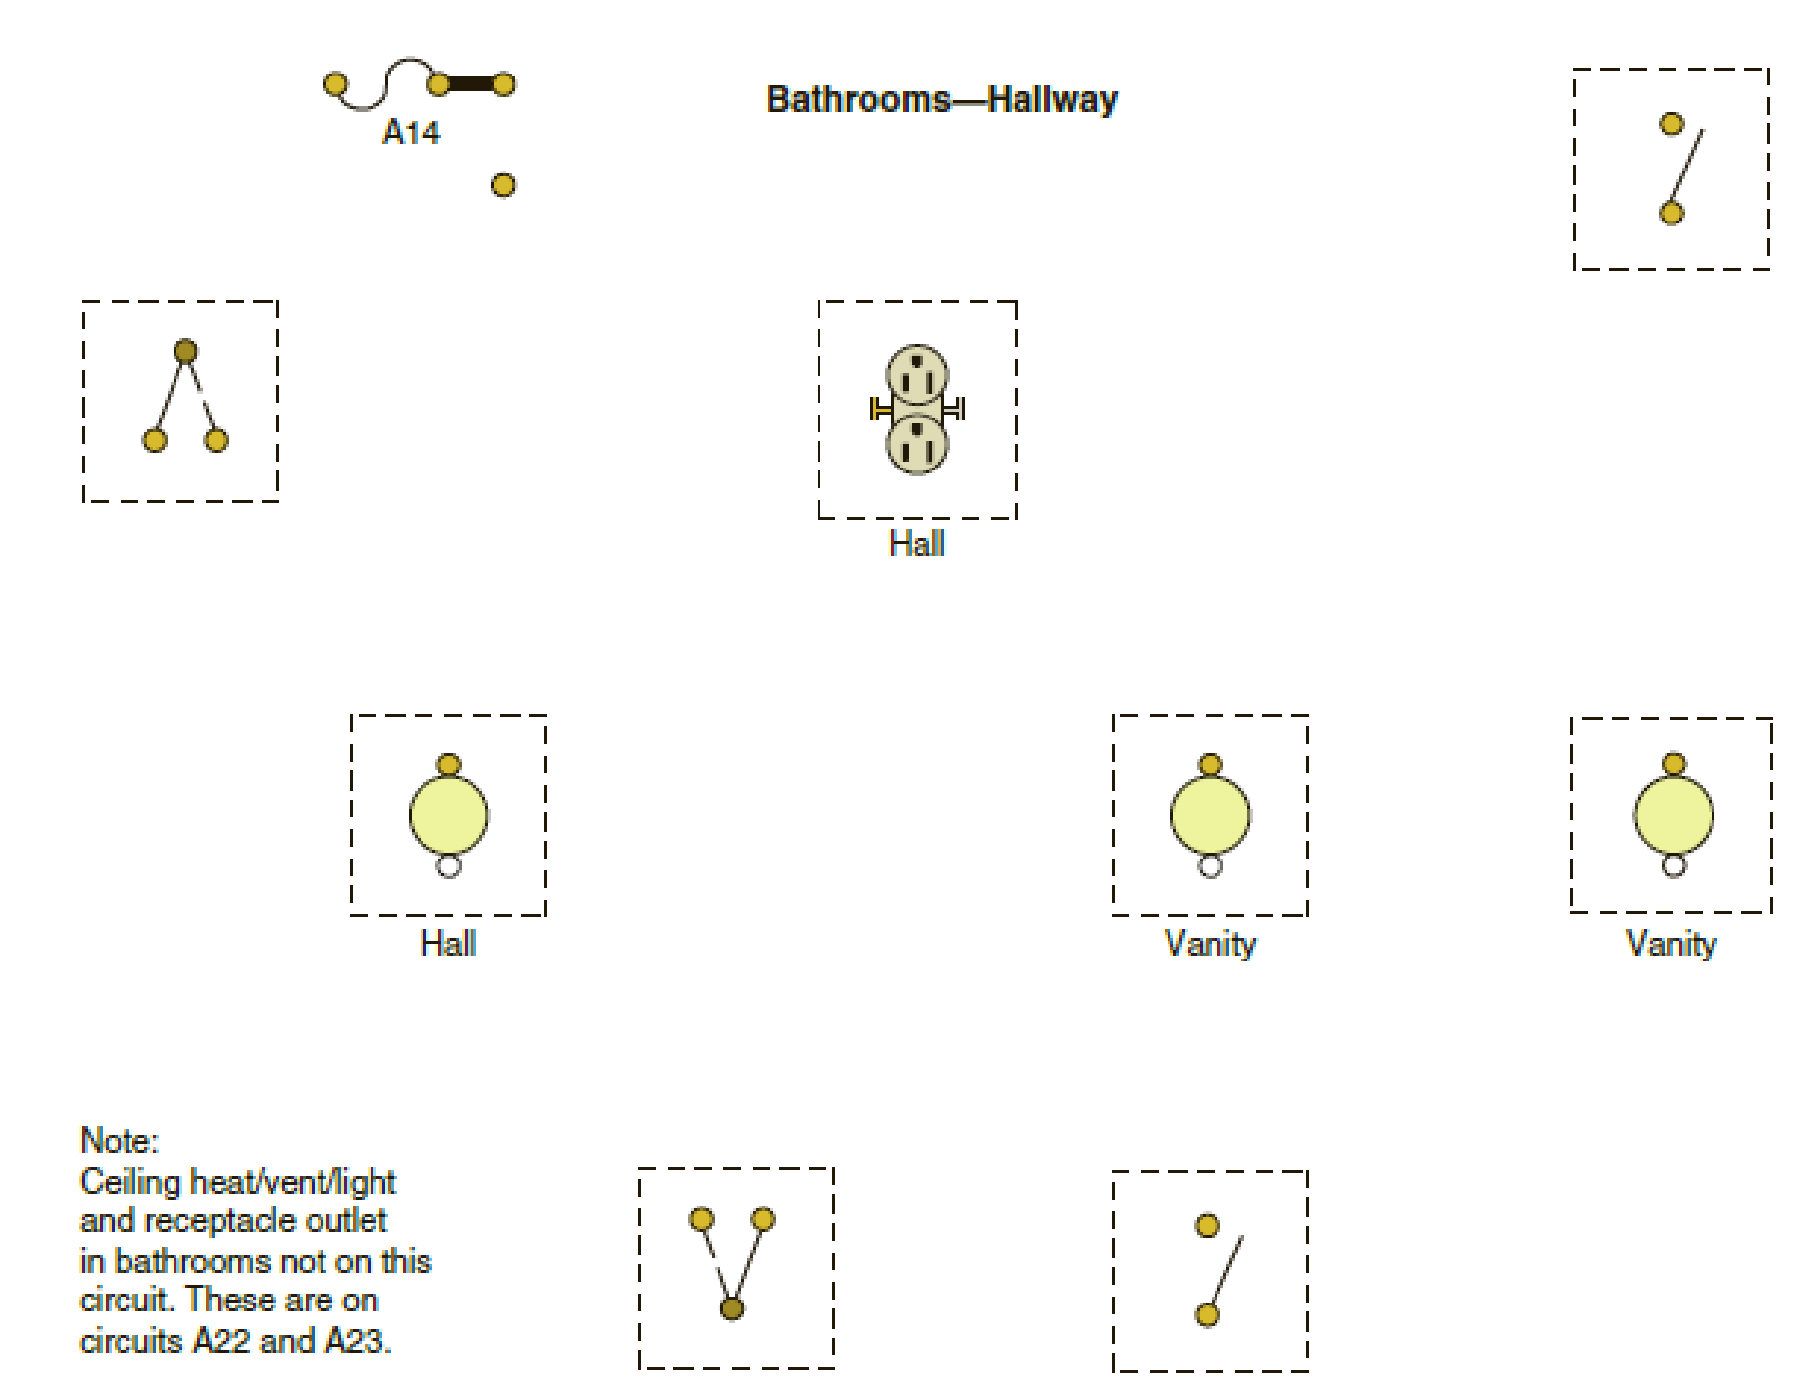 bathroom wiring diagram the following is a layout of a lighting circuit for the bathroom diagrams for wiring bathroom fan and lights layout of a lighting circuit